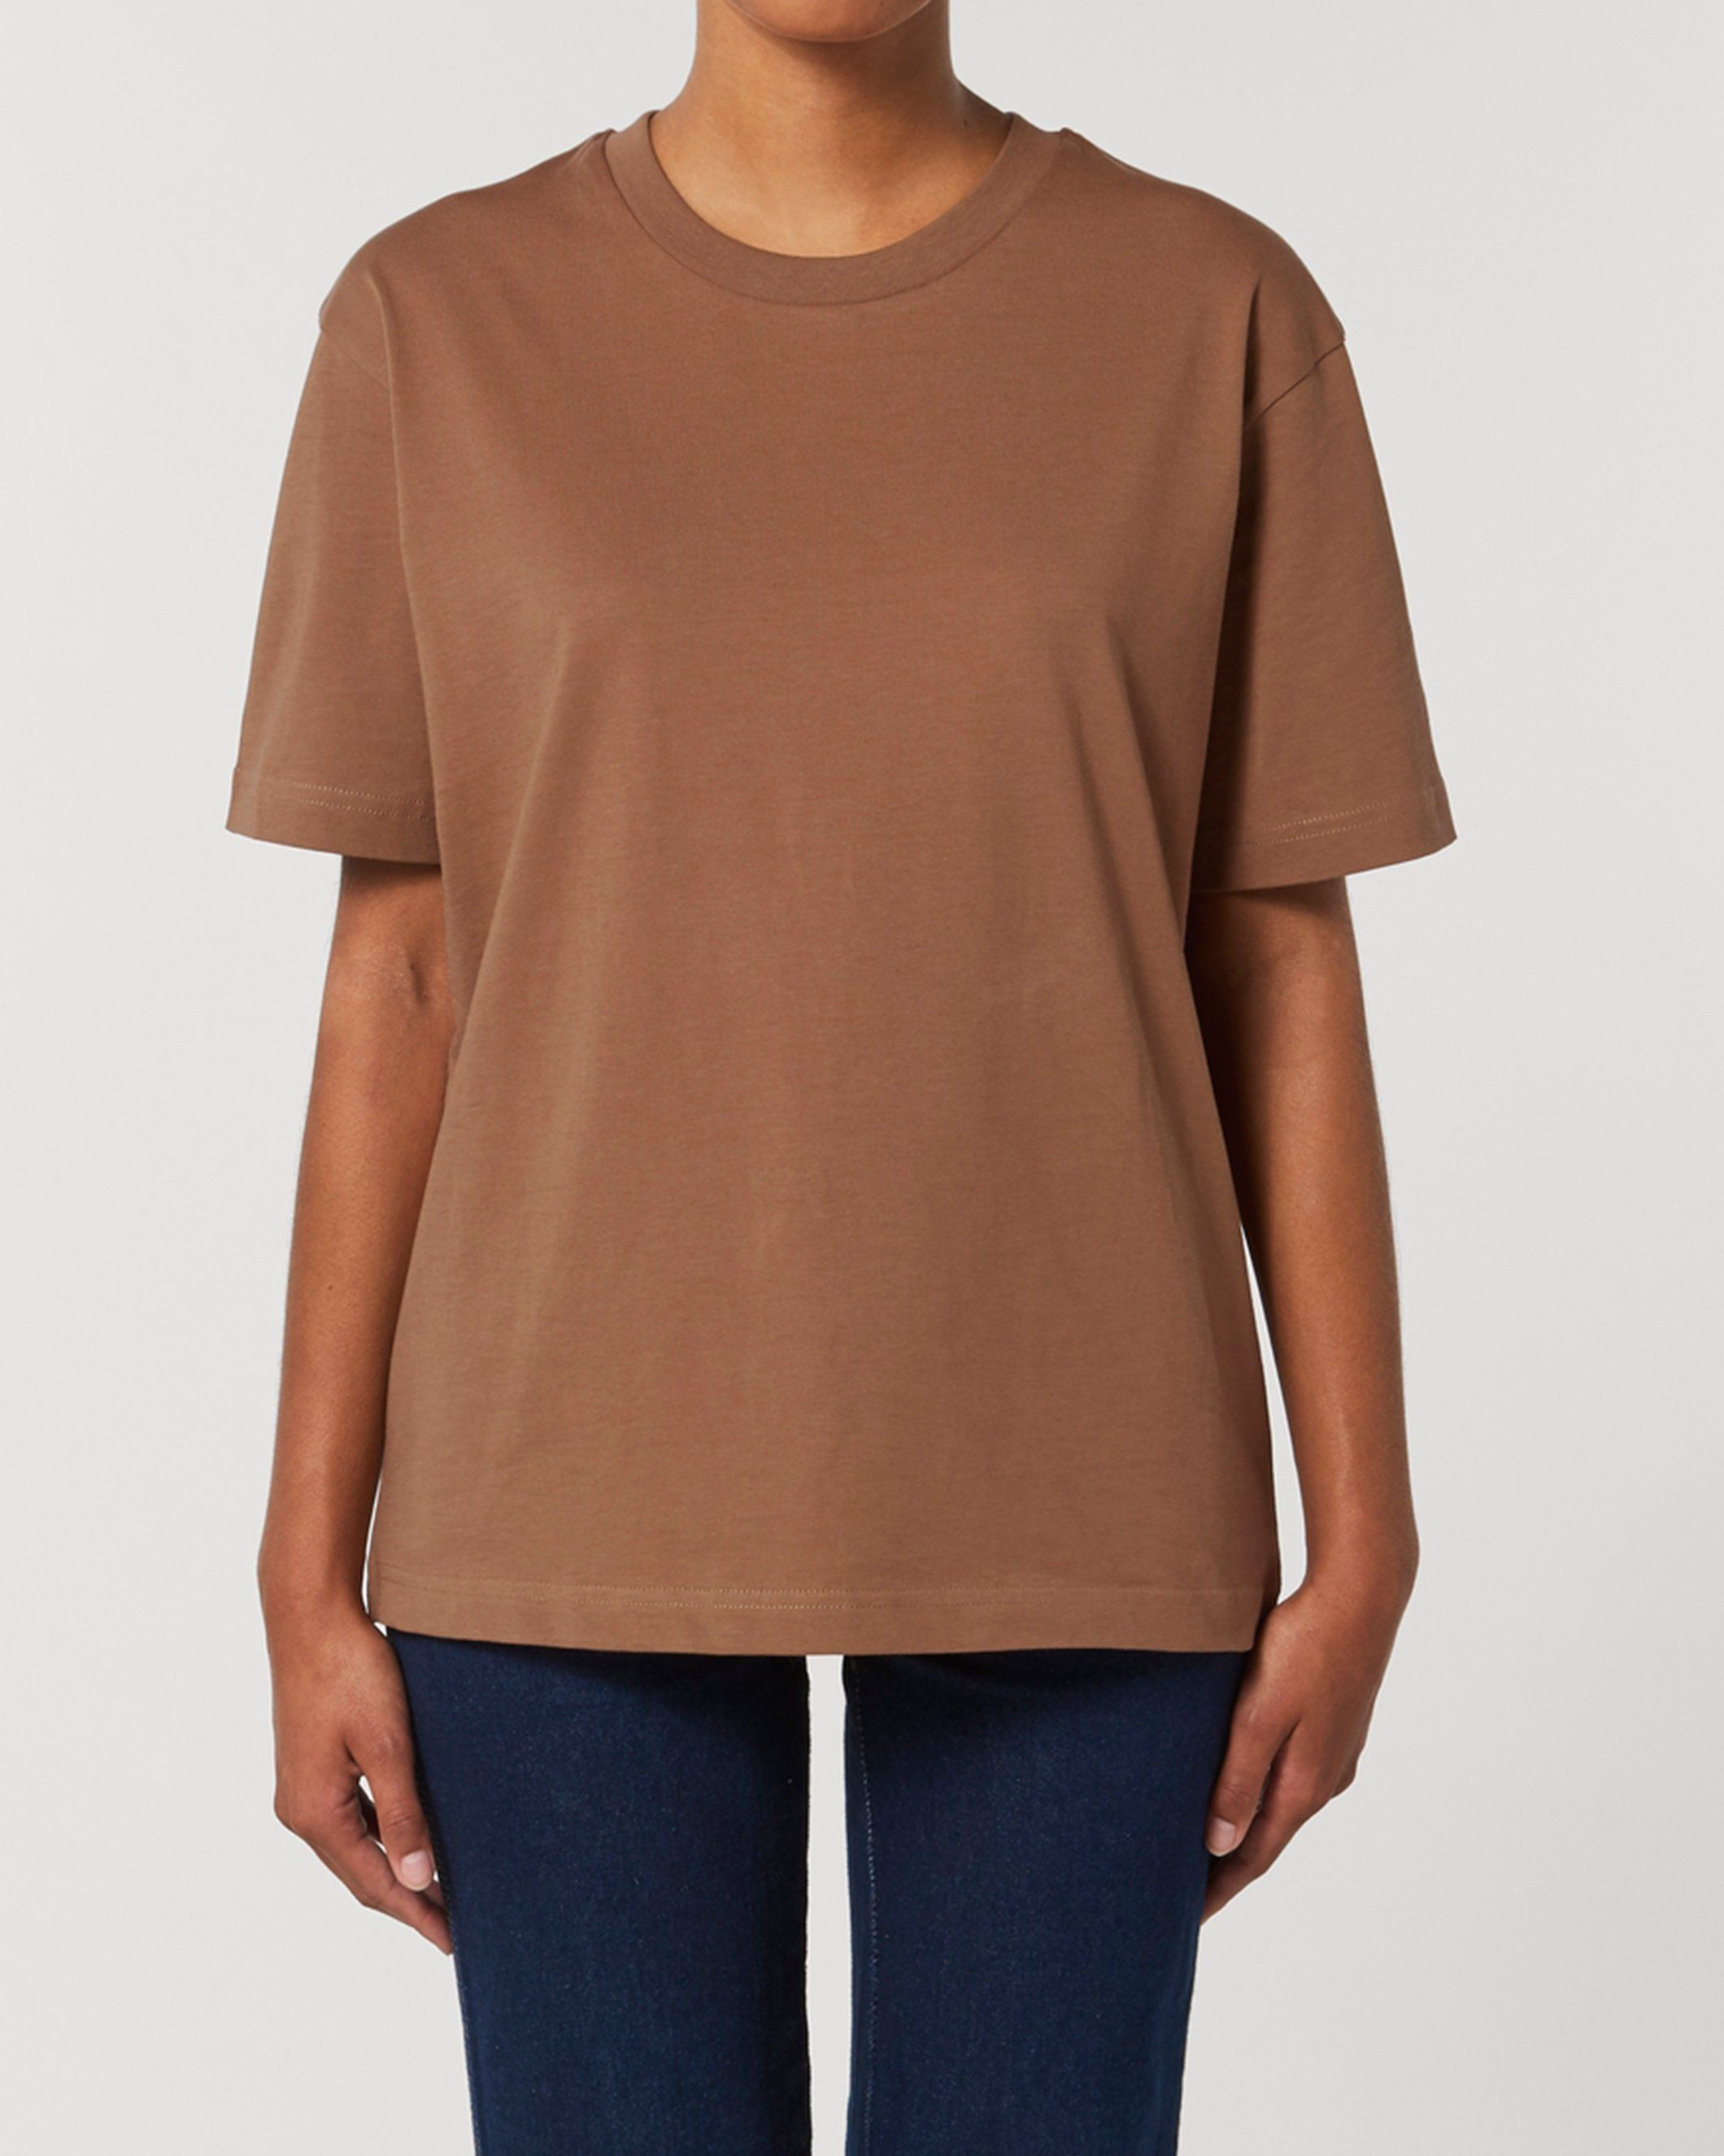 Antaratma Unisex Relaxed T-Shirt in Brown